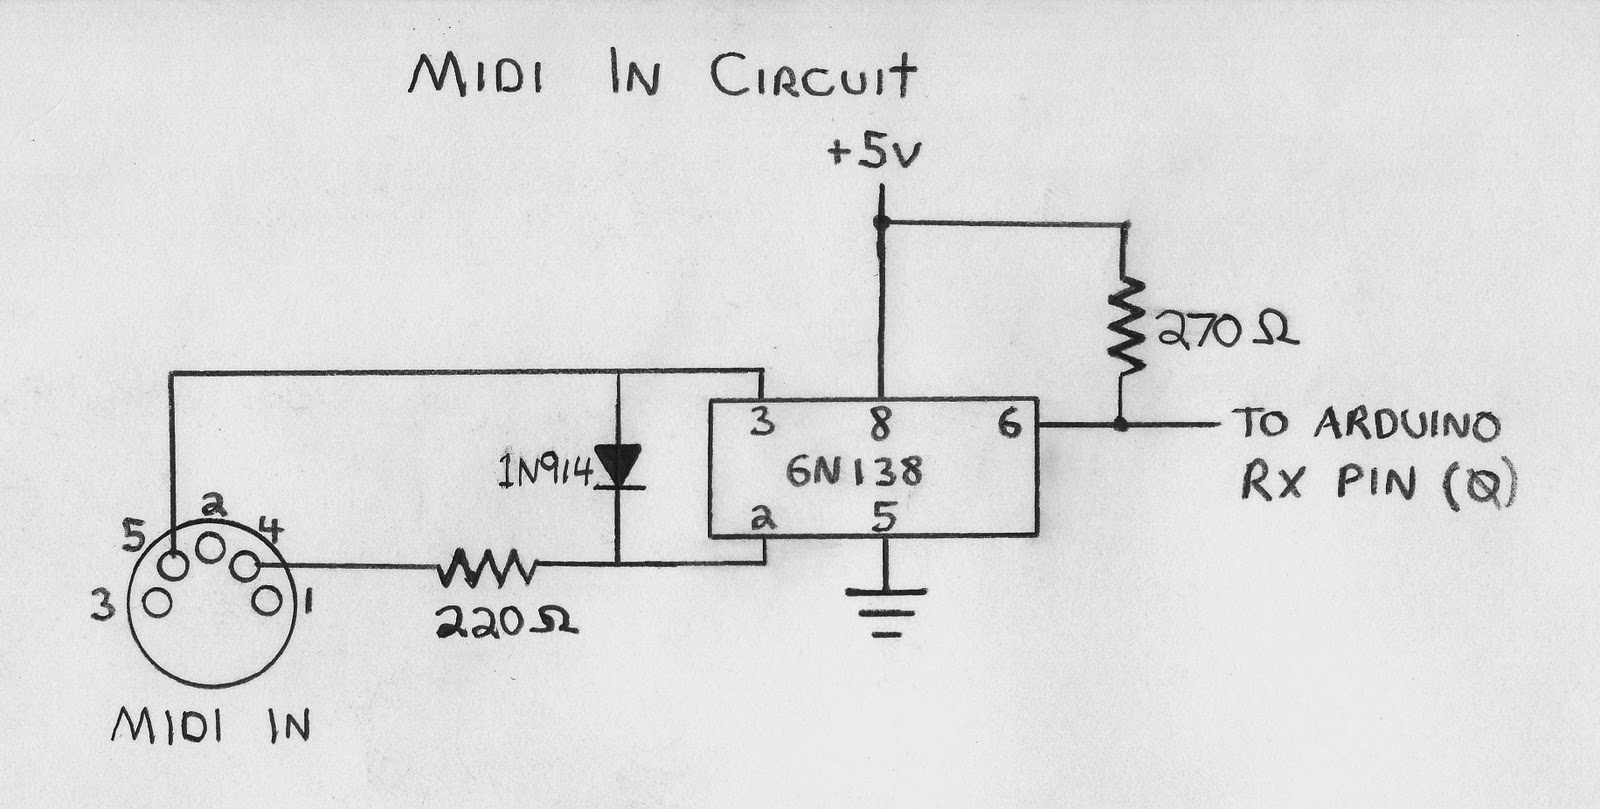 New Circuits Page 64 Stepkm Counter Circuit Diagrams Schematics Electronic Projects Nav 1 Arduino Soundgin Babblebot Synth